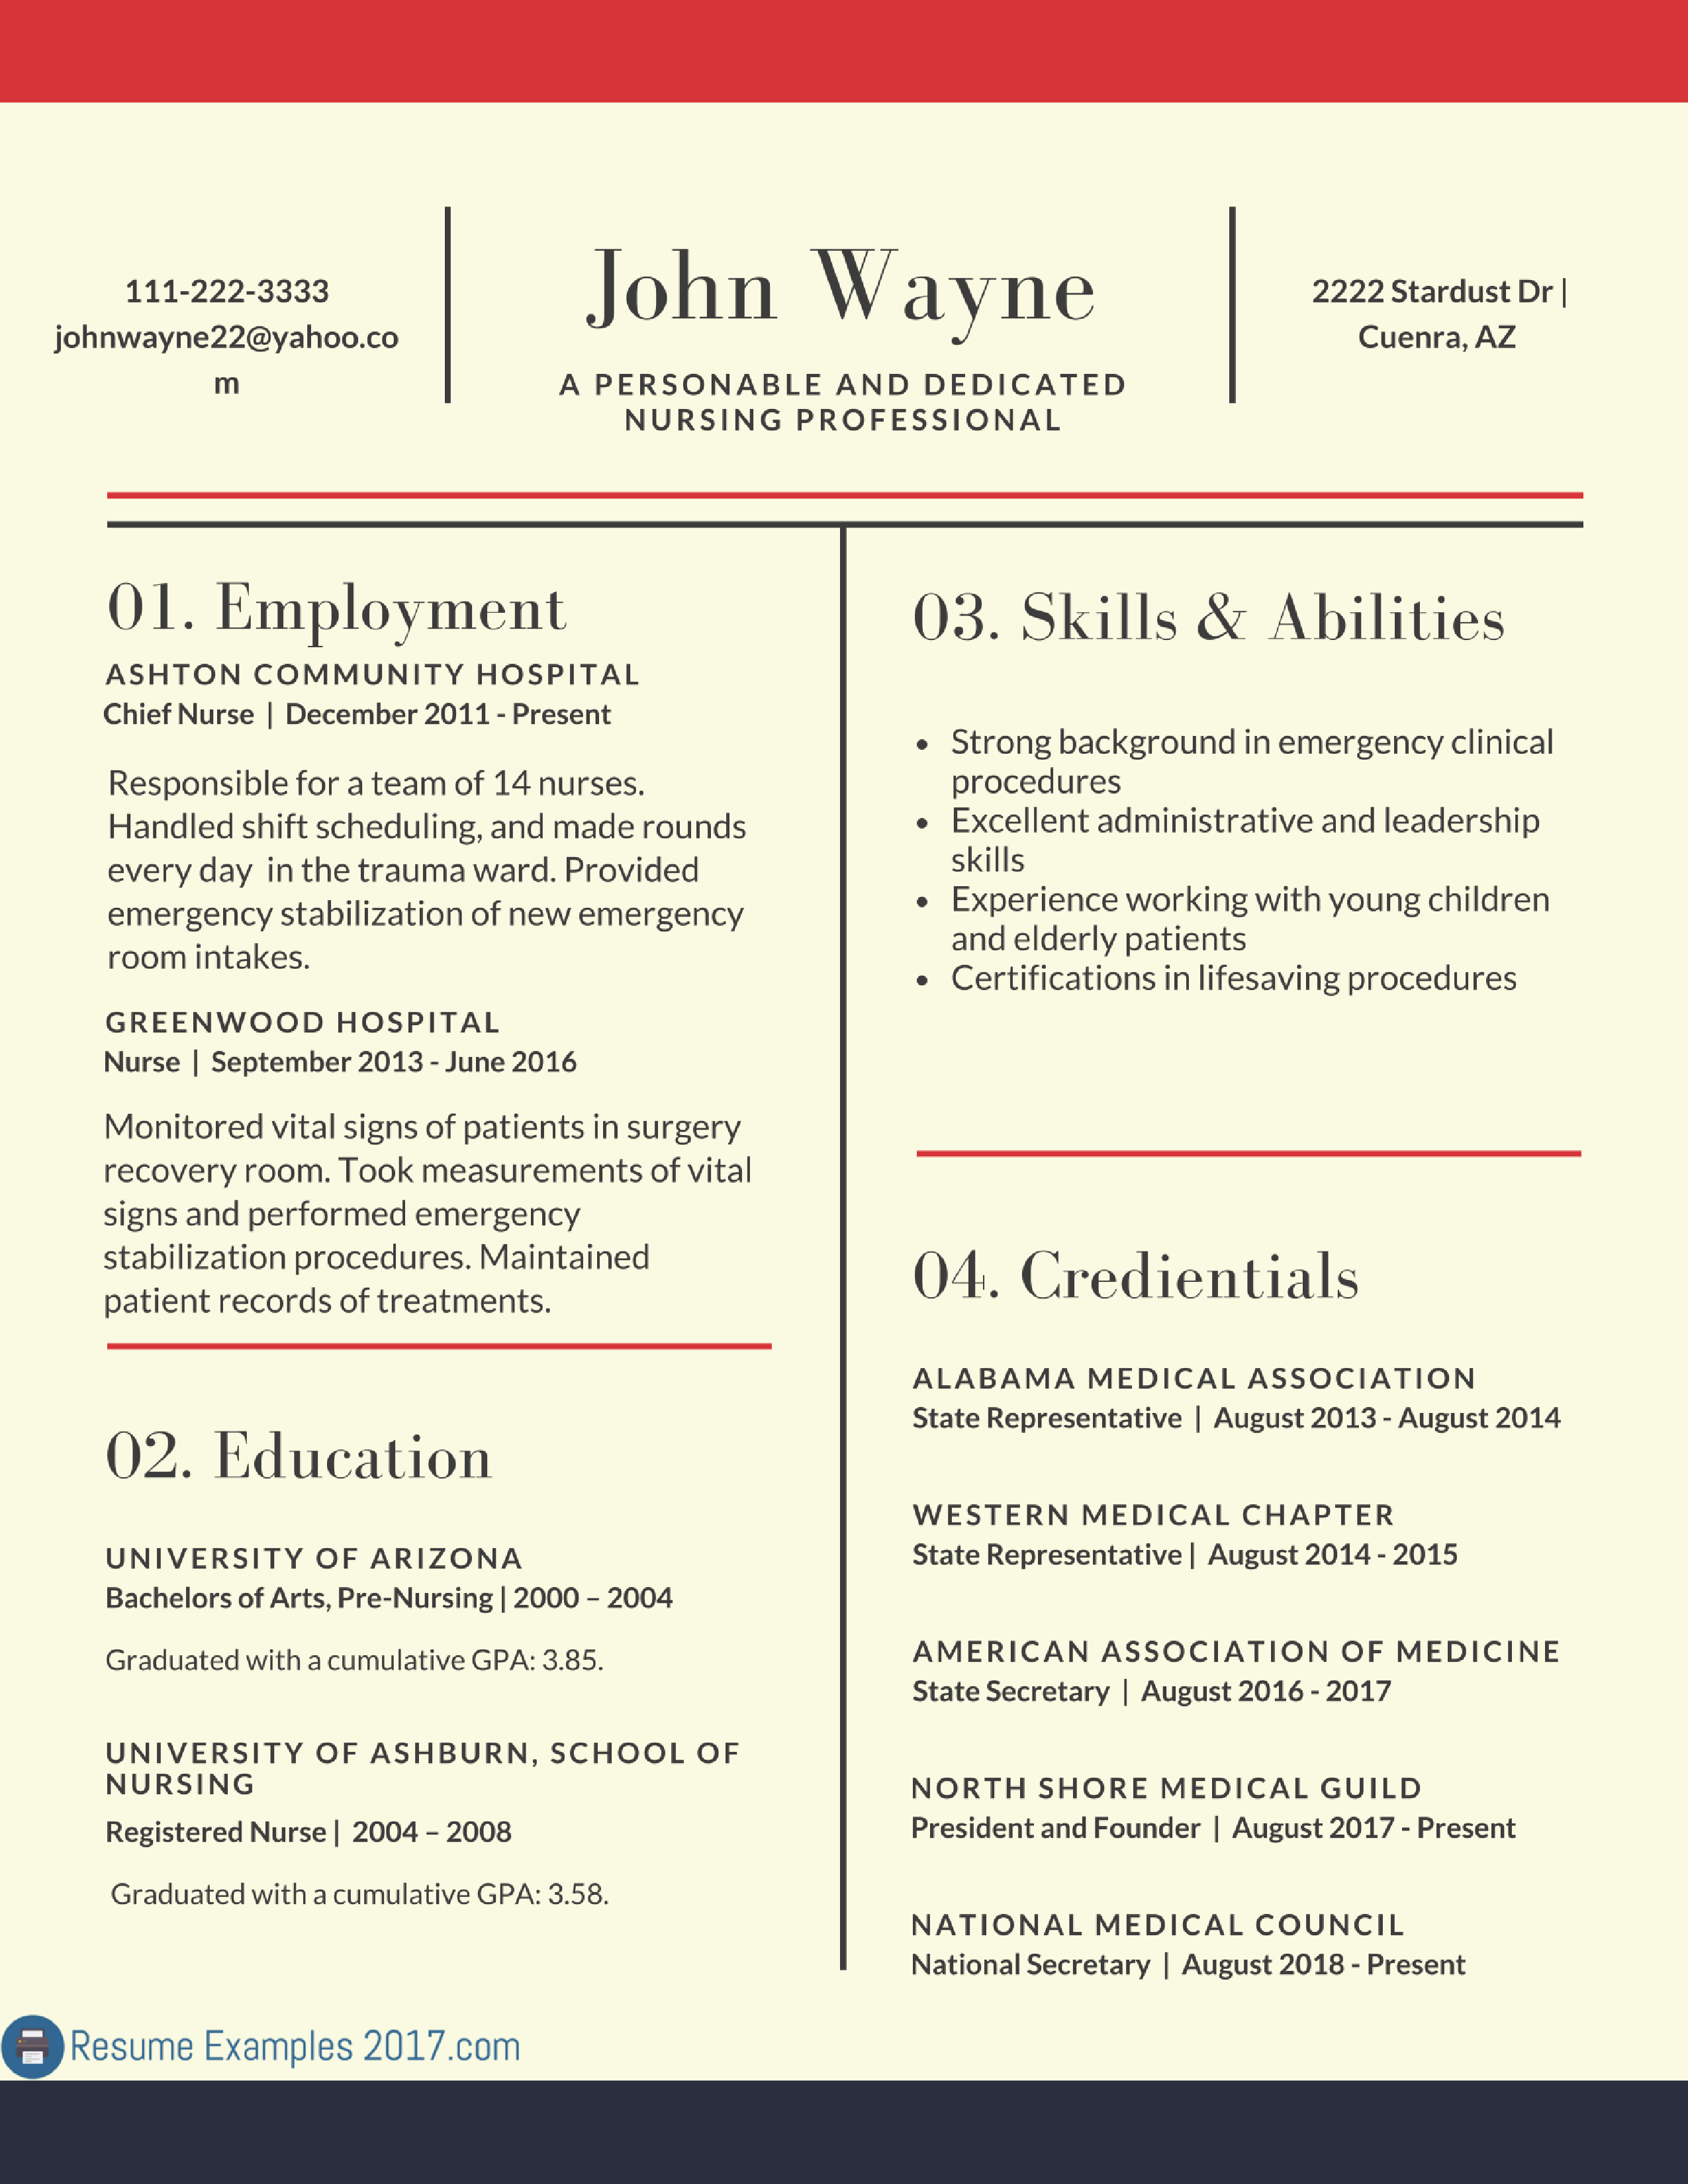 Resume Examples 2017 Skills Resume examples, Simple